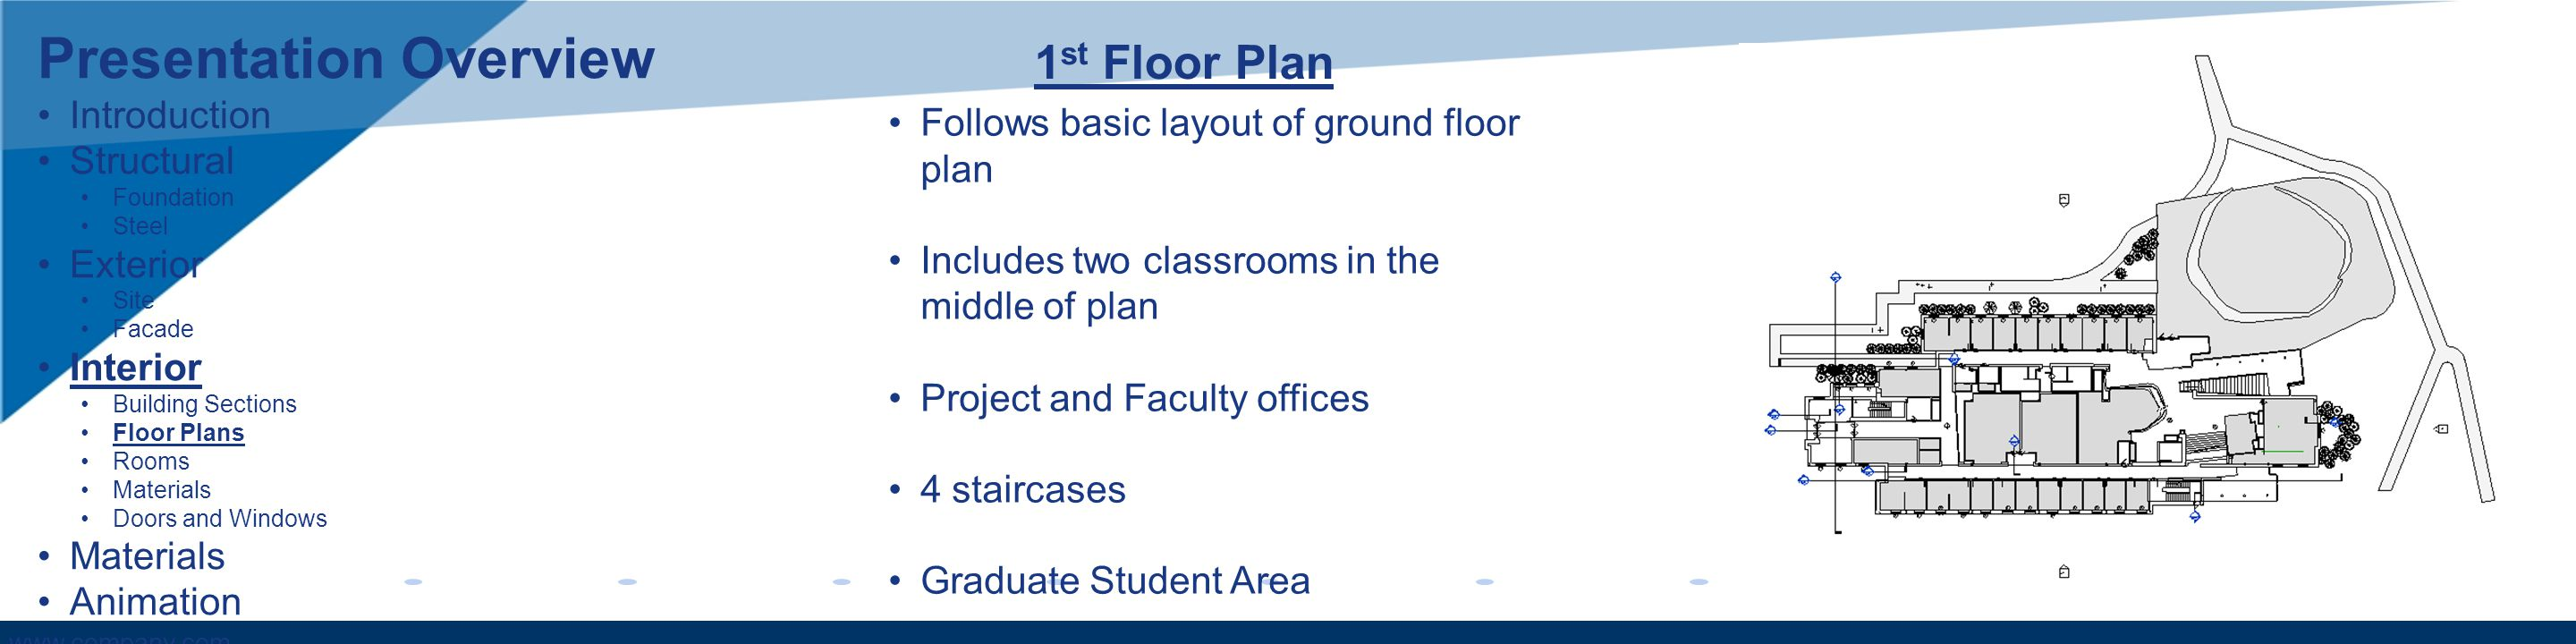 www.company.com Follows basic layout of ground floor plan Includes two classrooms in the middle of plan Project and Faculty offices 4 staircases Gradu